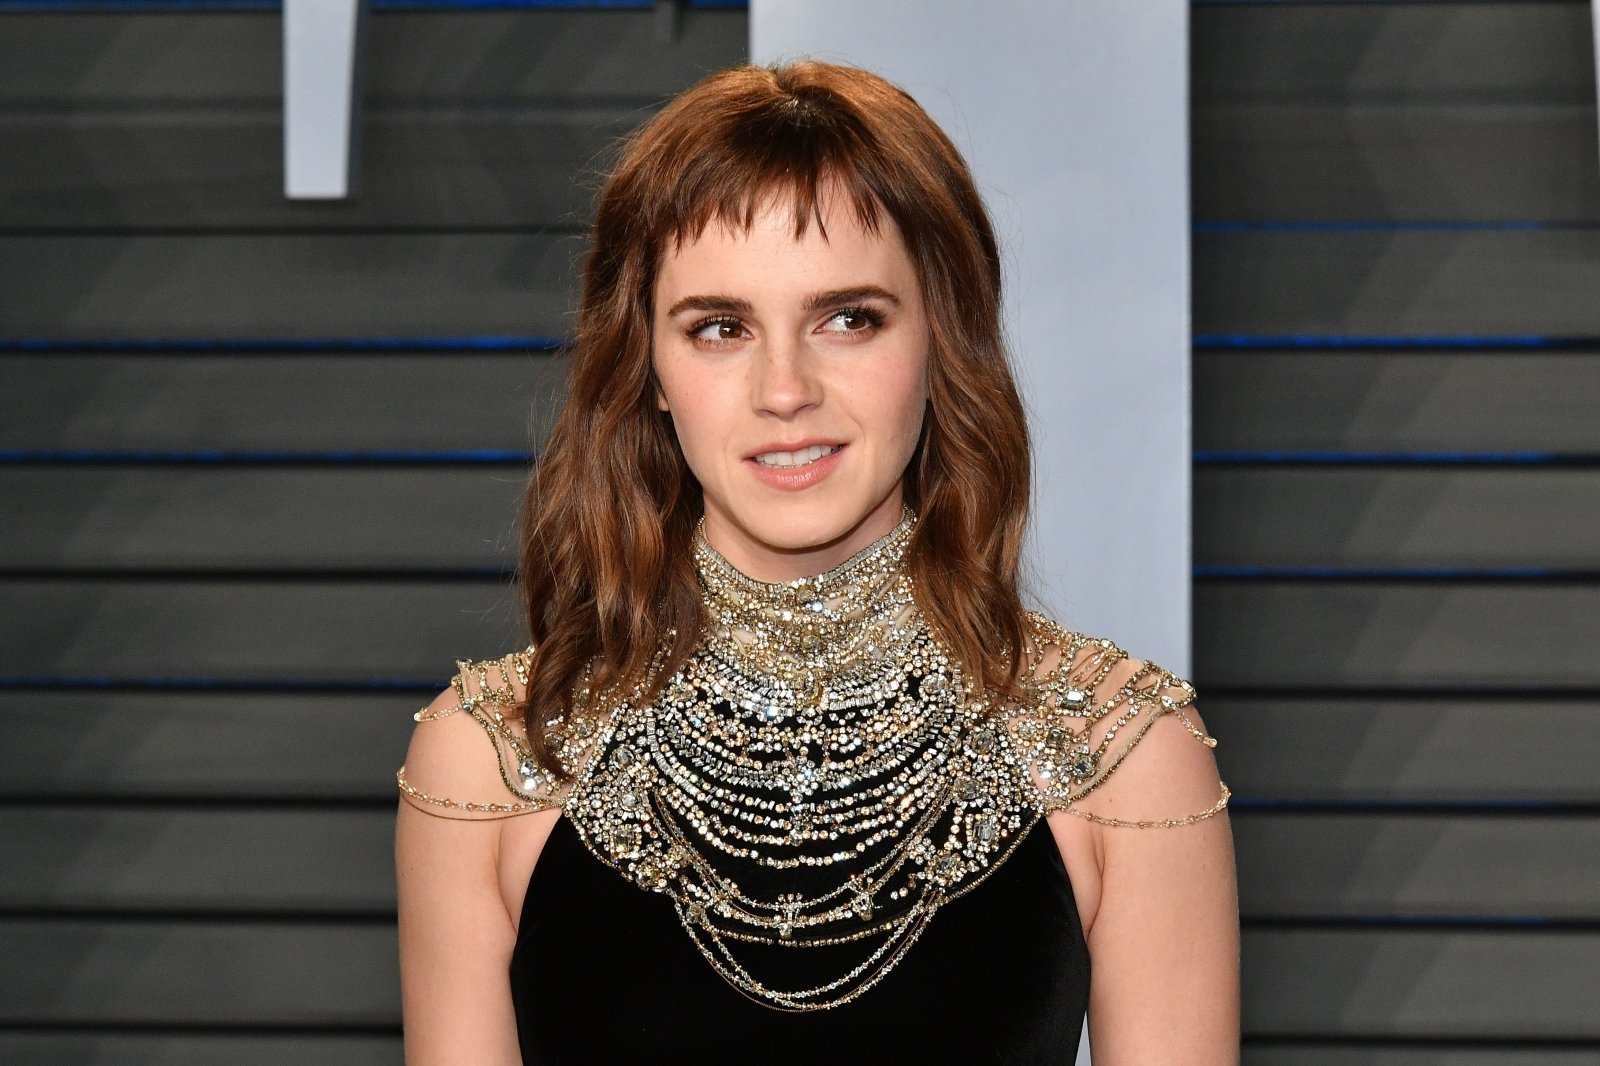 Emma Watson Debuts 'Time's Up' Tattoo